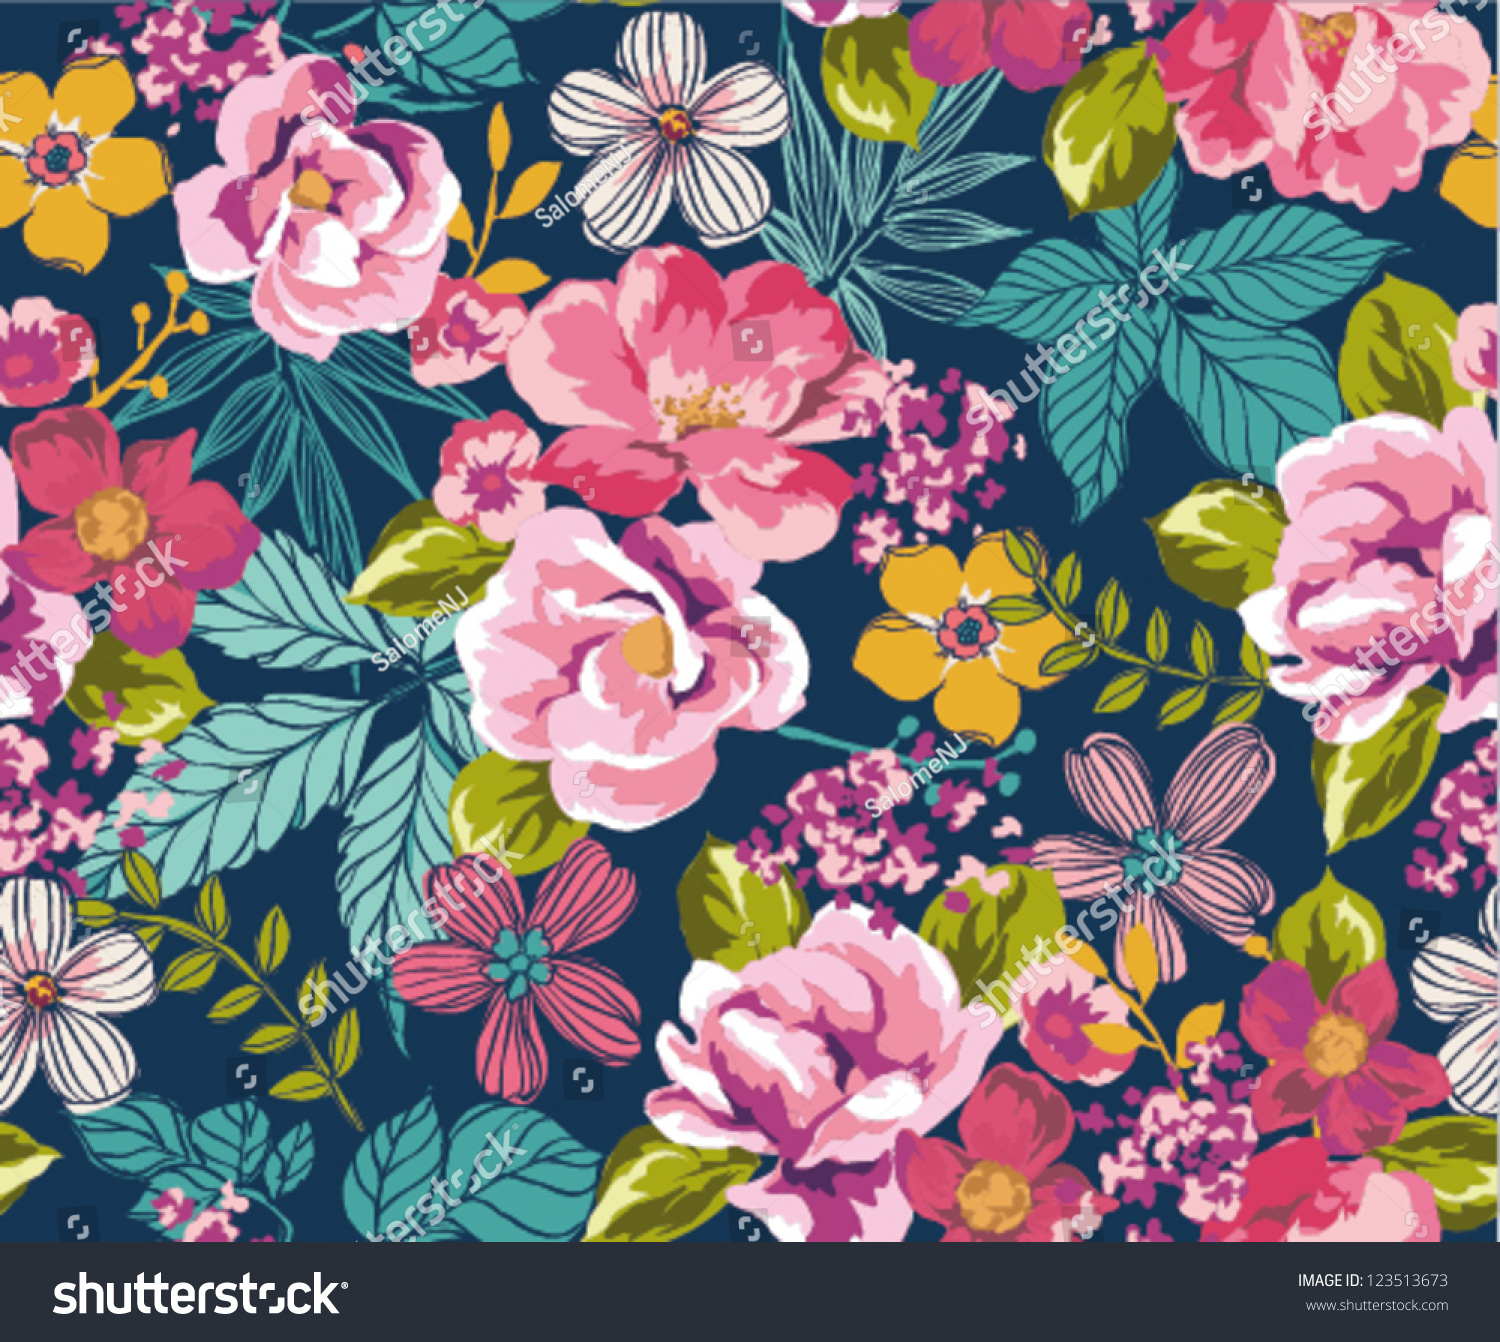 Seamless Summer Tropical Floral Background Vector Pattern - 123513673 ...: www.shutterstock.com/pic-123513673/stock-vector-seamless-summer...